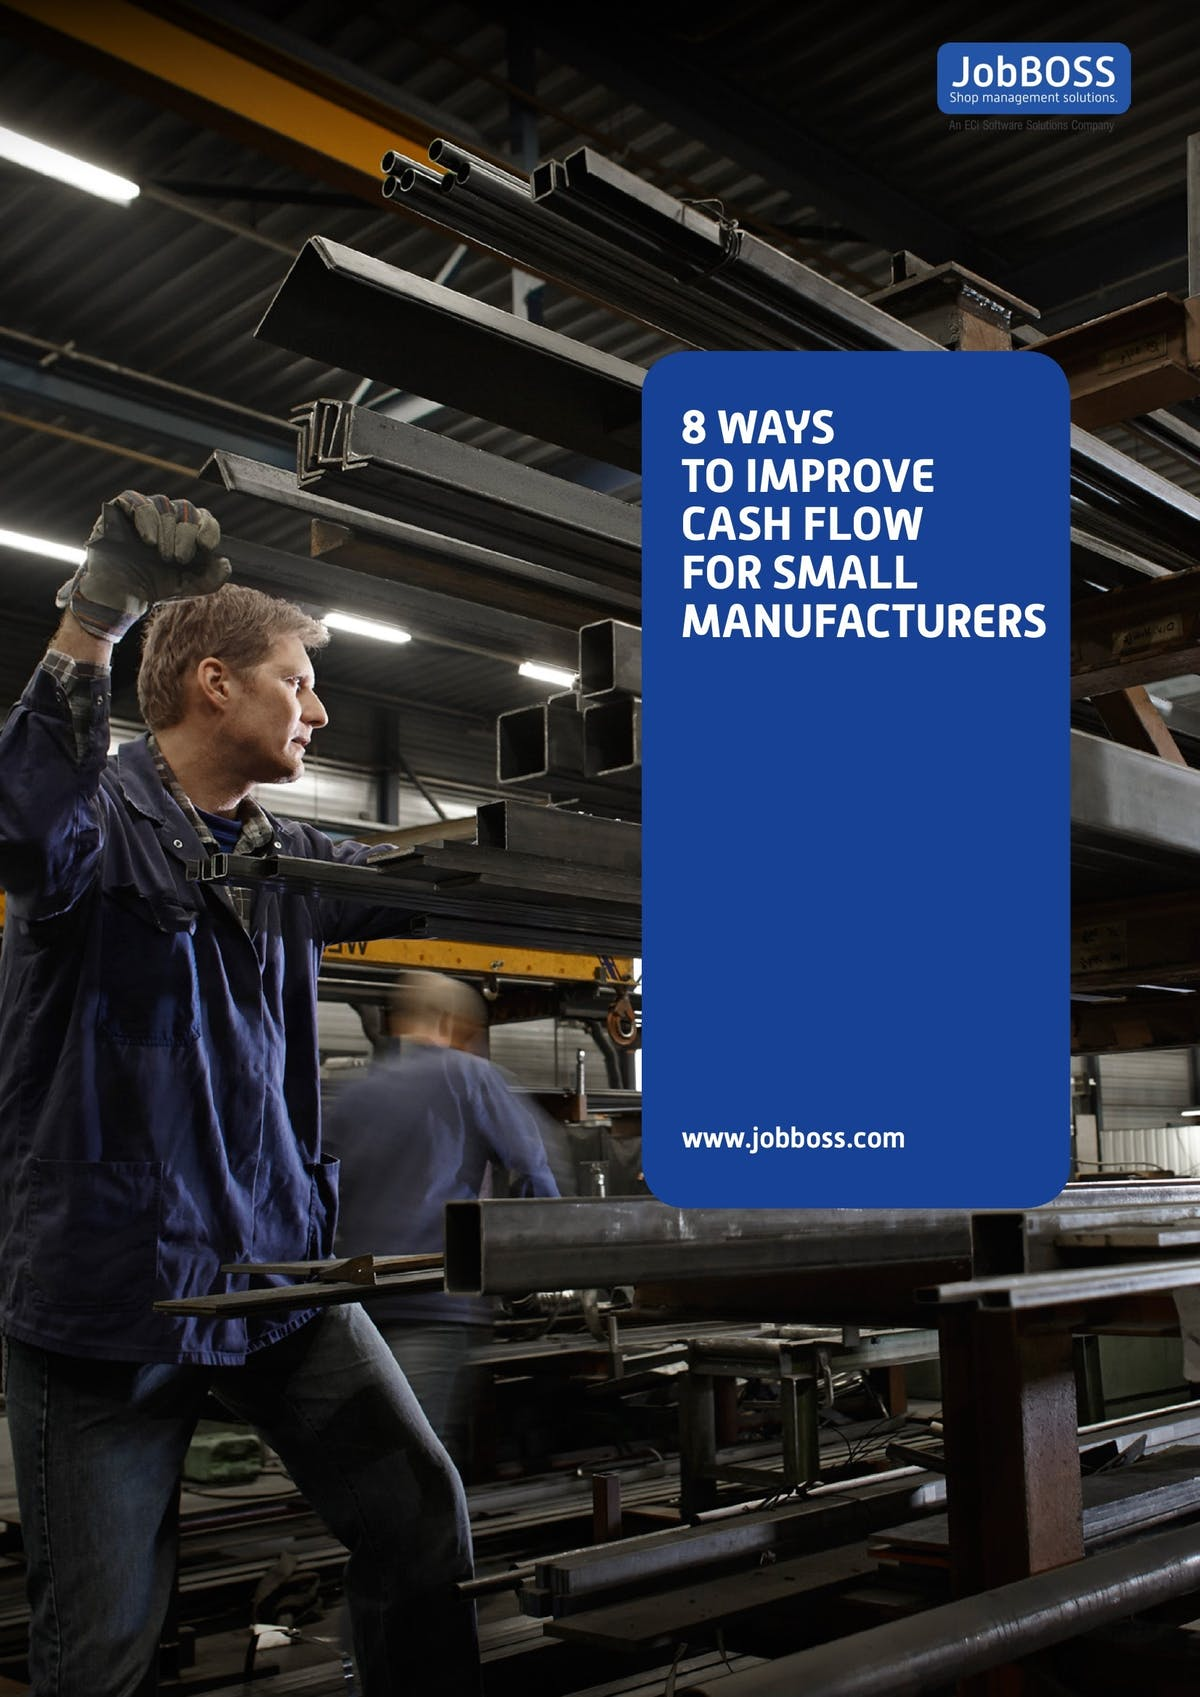 JobBOSS  Shop Management Solution White Paper - 8 Ways to Improve Cash Flow for Small Manufacturers